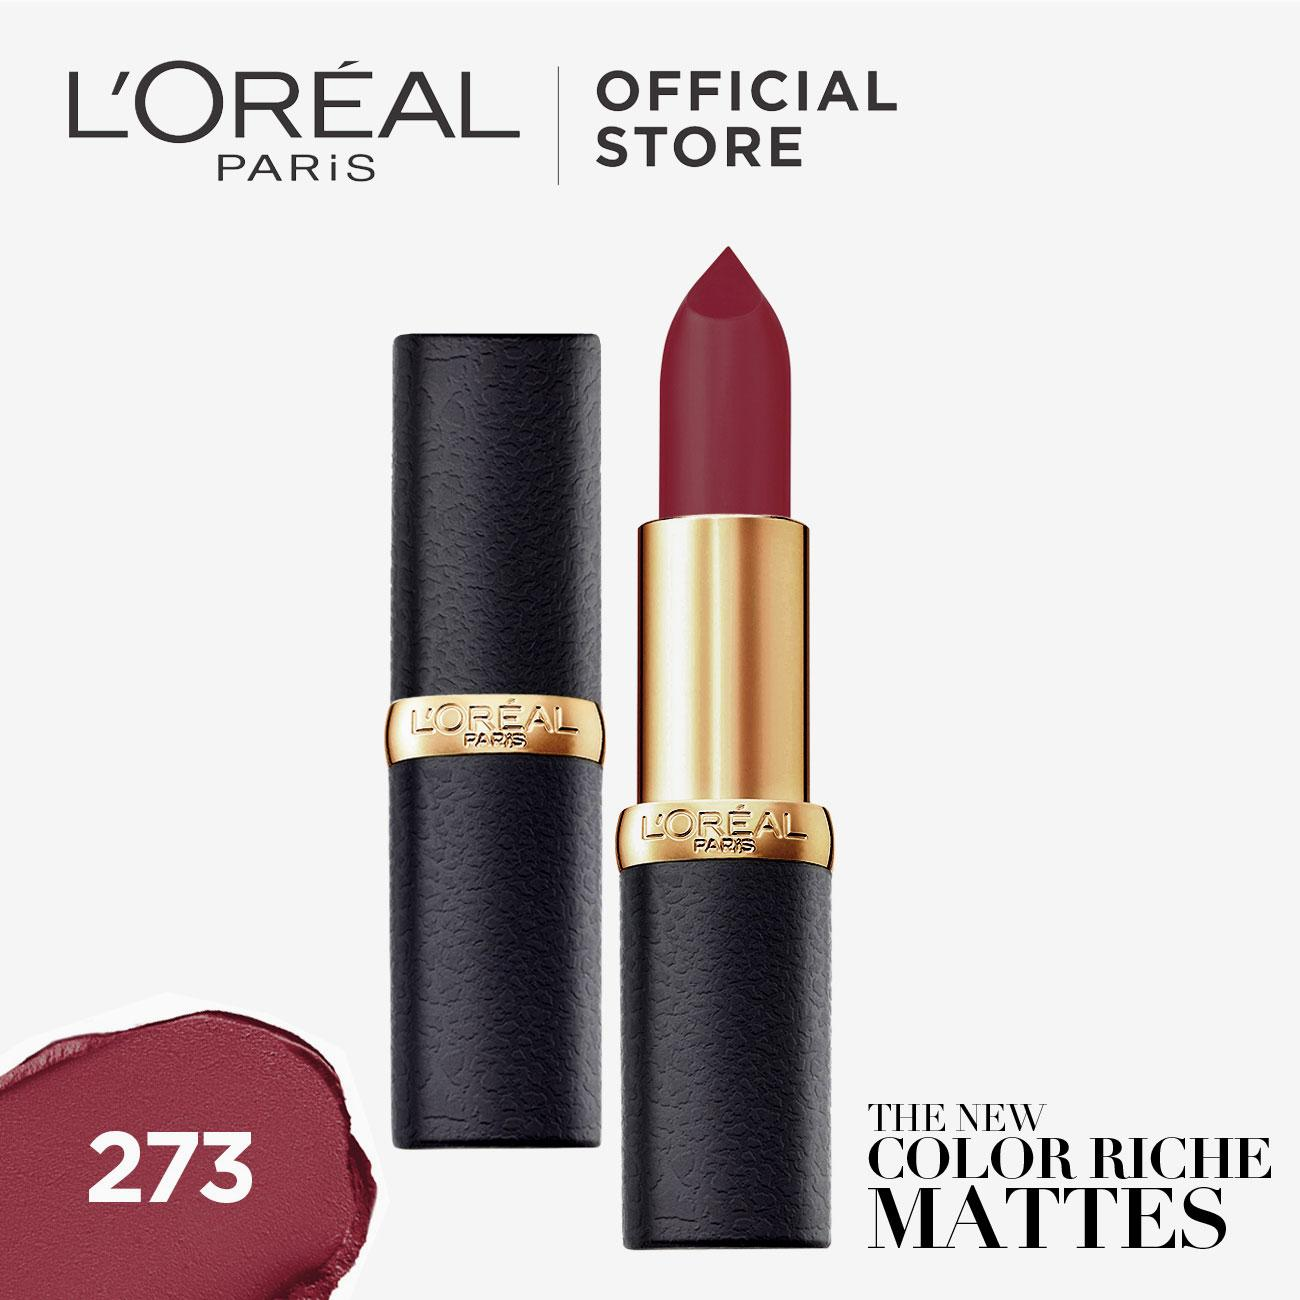 Lipstick Brands Lip Color On Sale Prices Set Reviews In